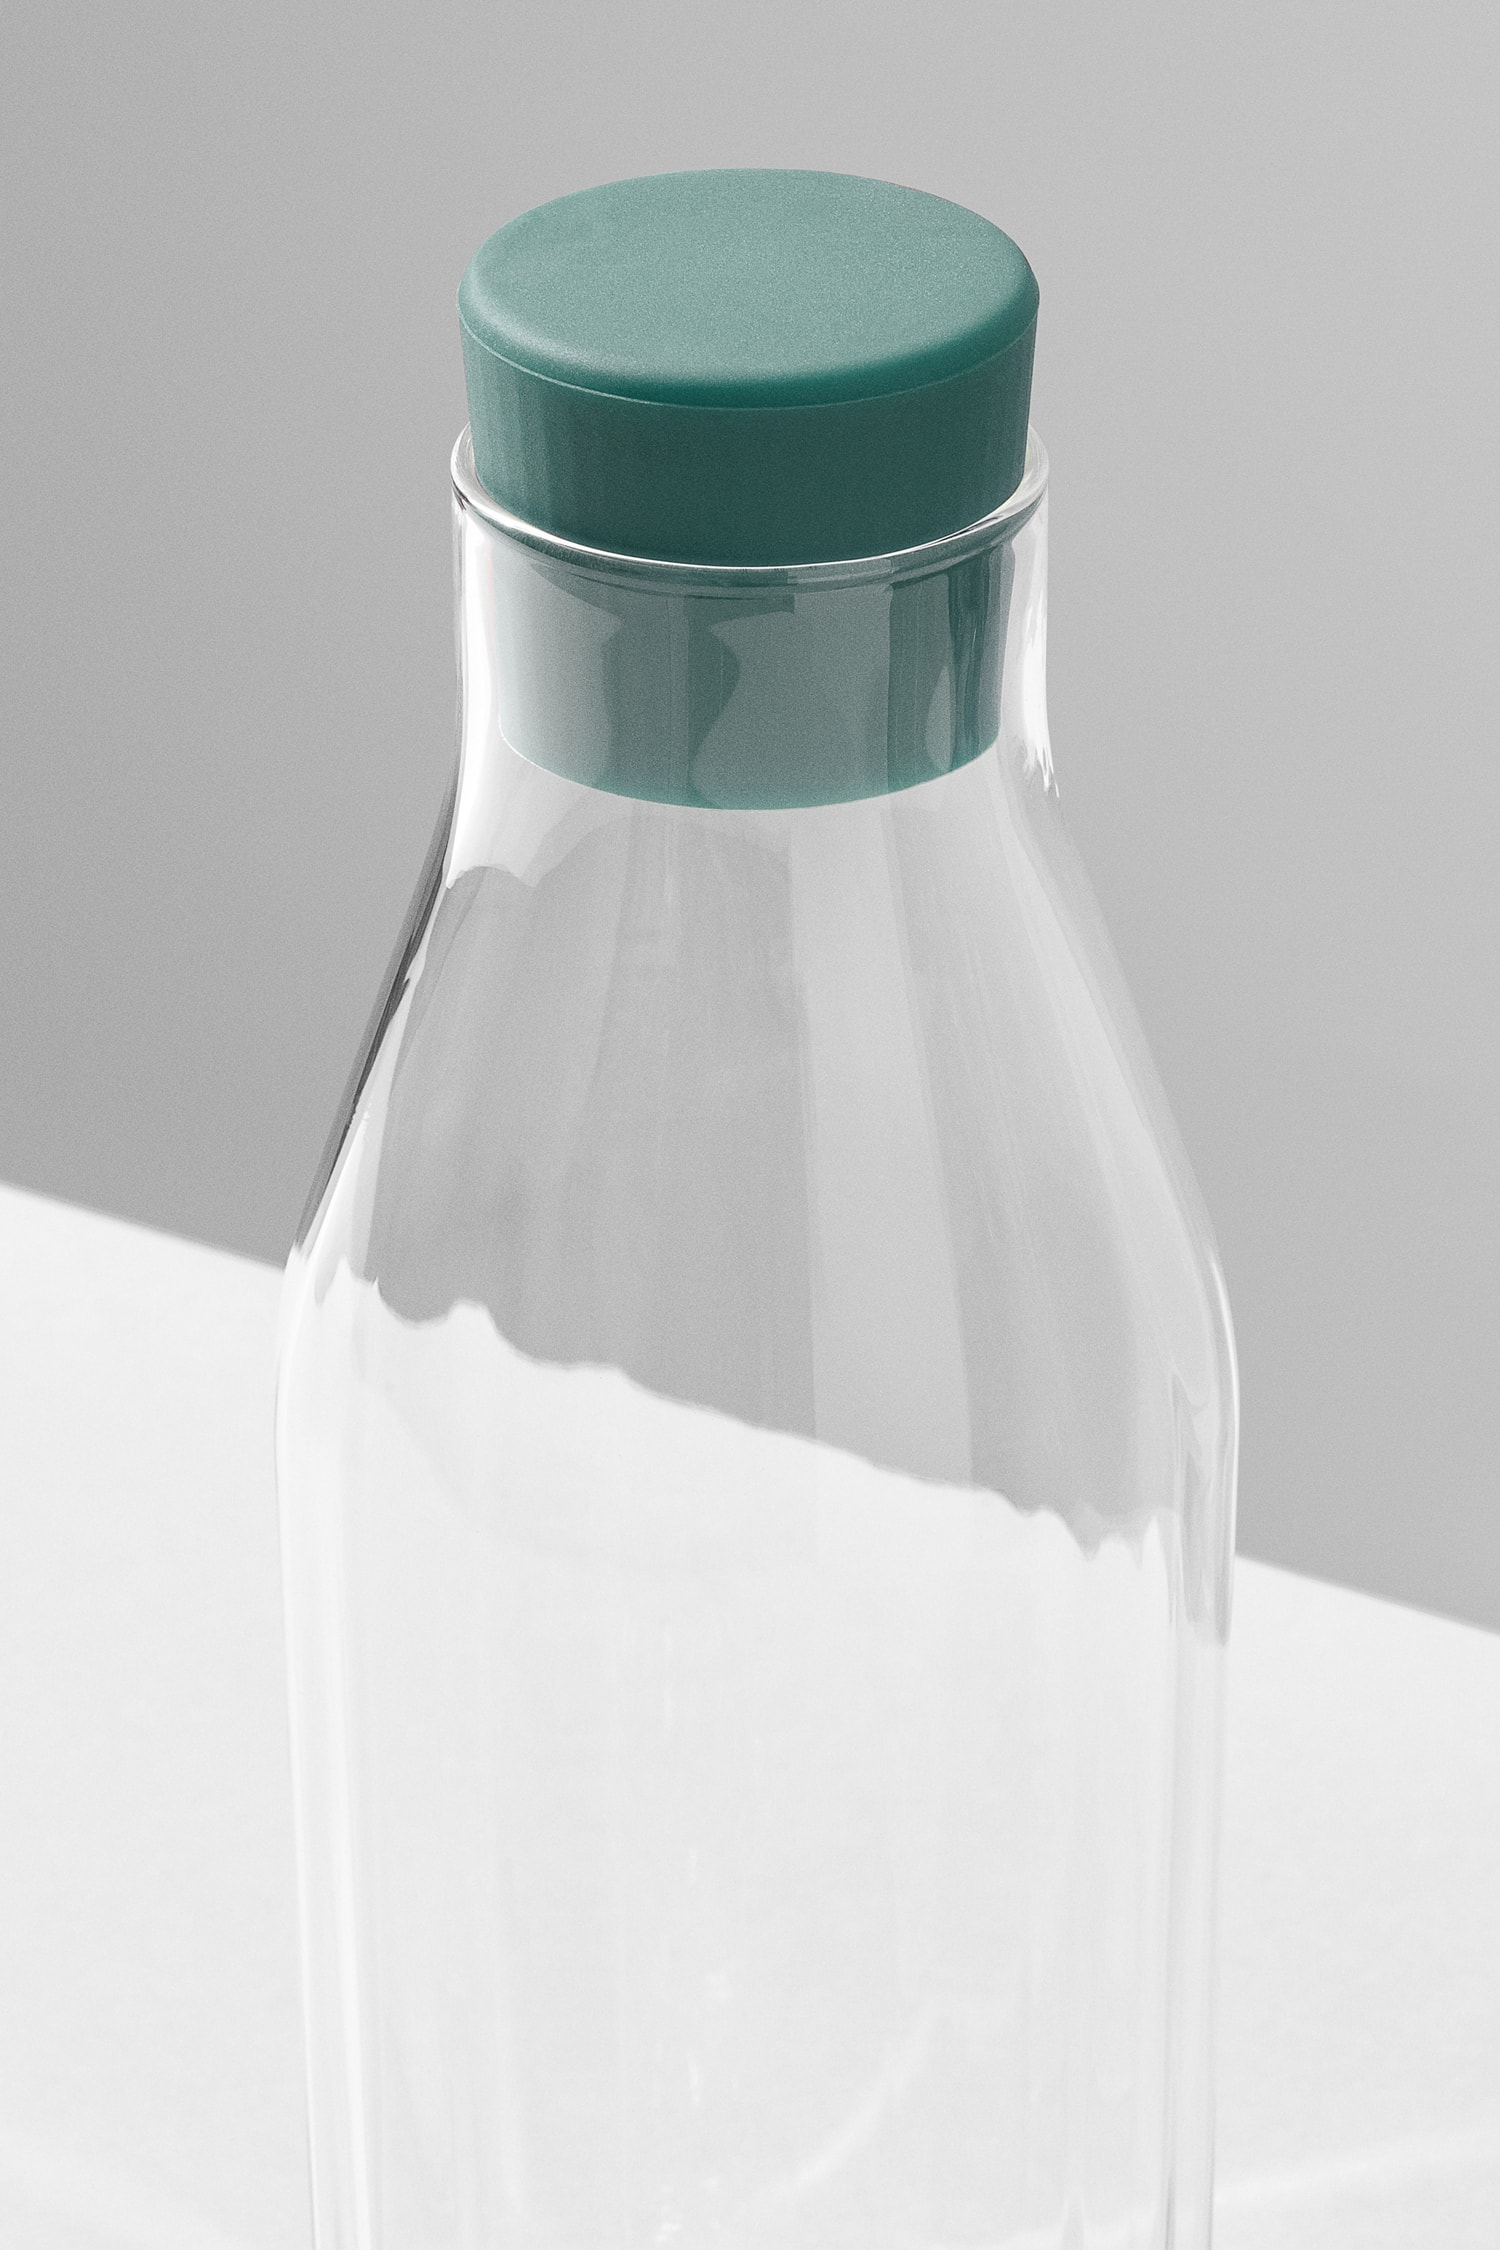 Perspective view of the top of the Rivington Glassware carafe showing the facets, green stopper.